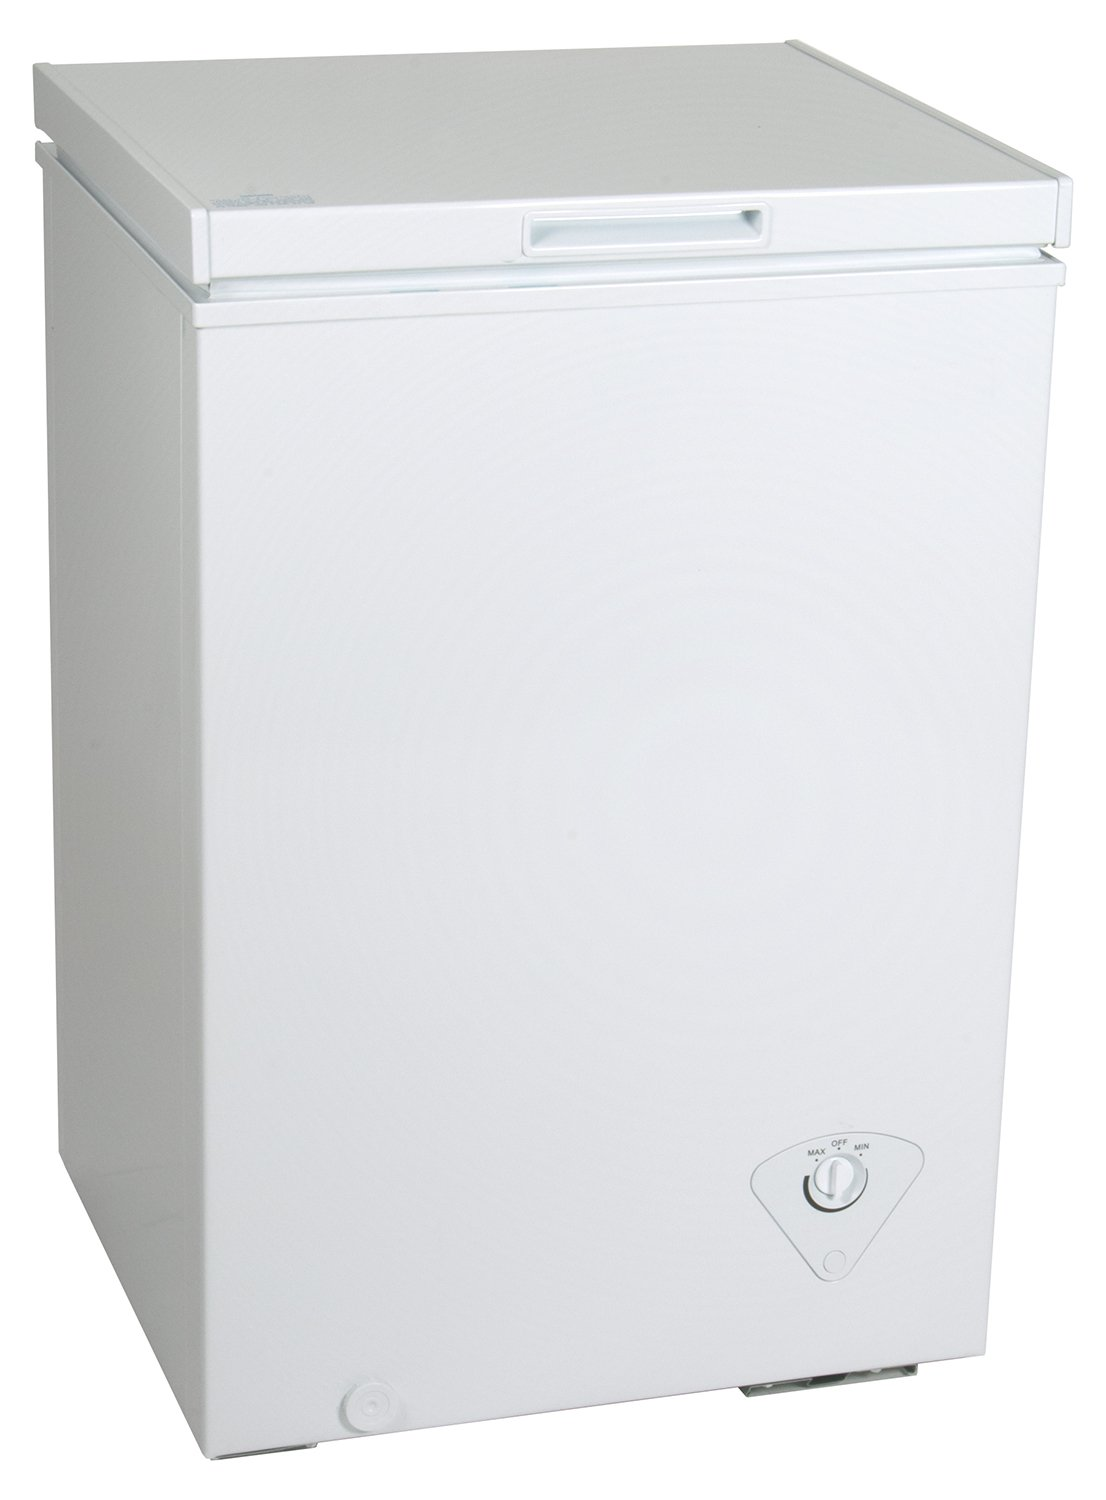 Koolatron KTCF99 3.5 cu. ft. Chest Freezer, White by Koolatron